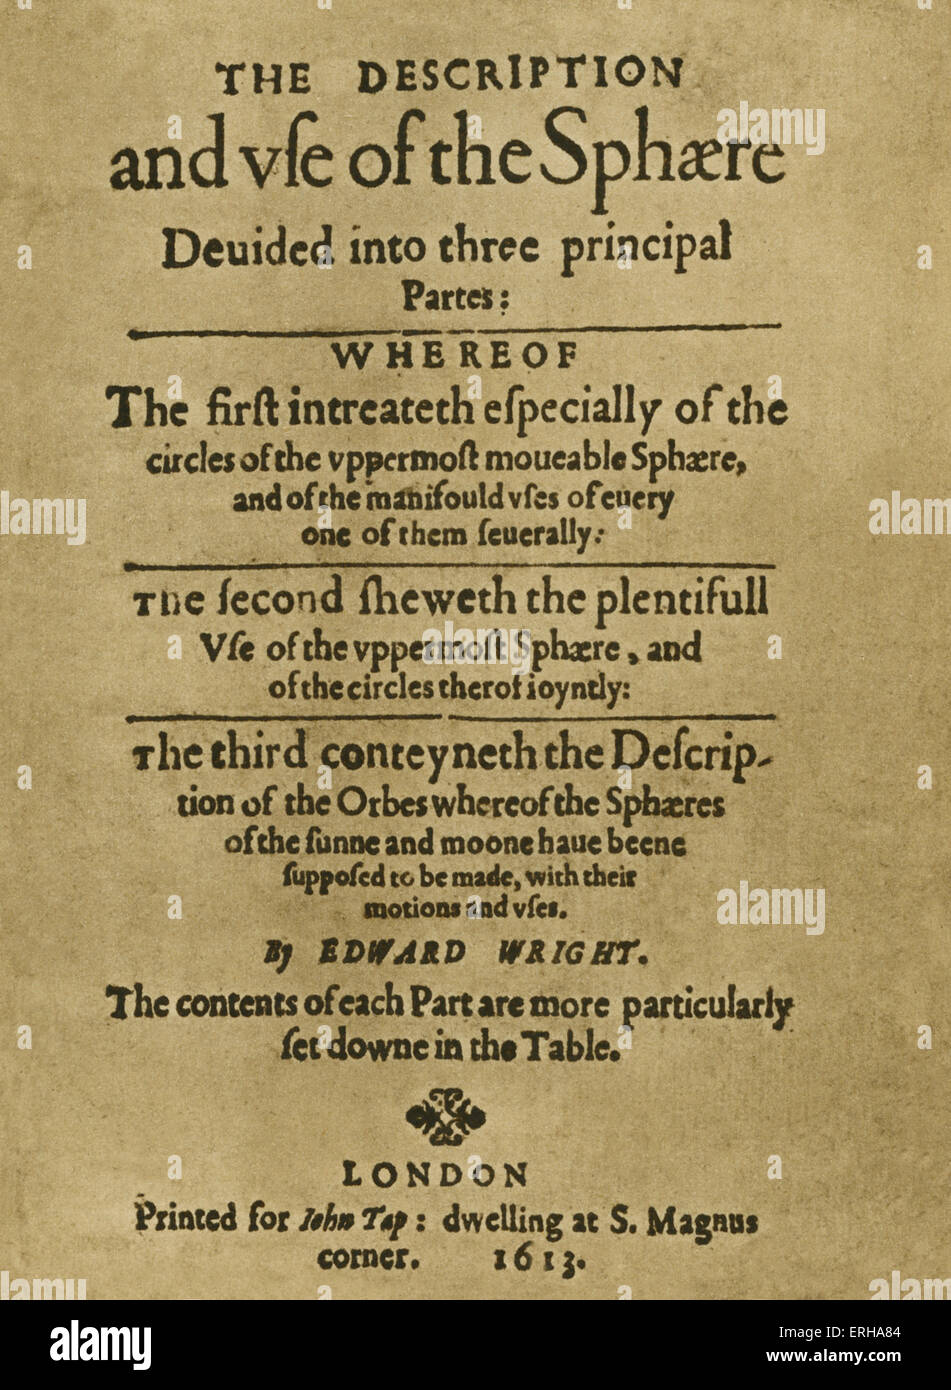 Title page: 'The Description and Use of the Sphere, divided into three principal parts' by Edward Wright - Stock Image